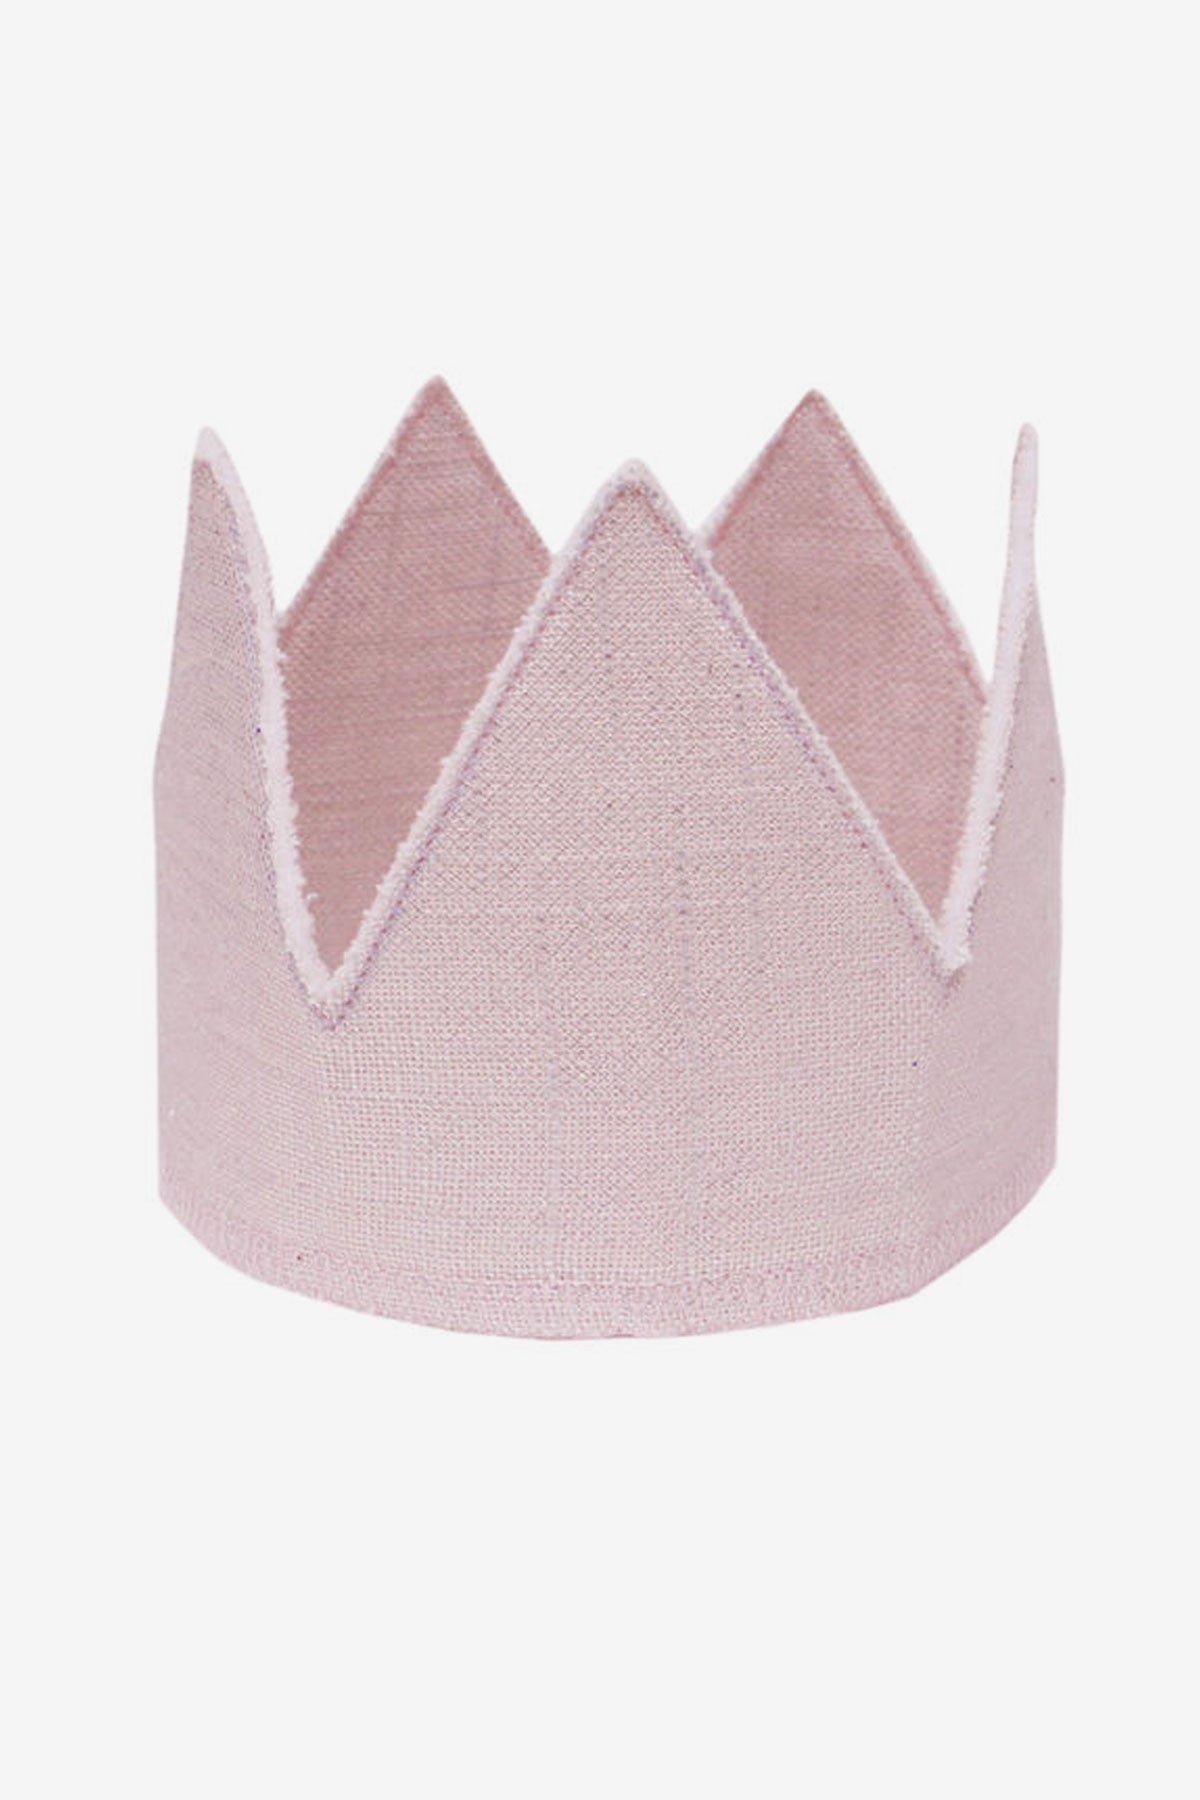 Oh Baby! Princess Crown - Blush Pink